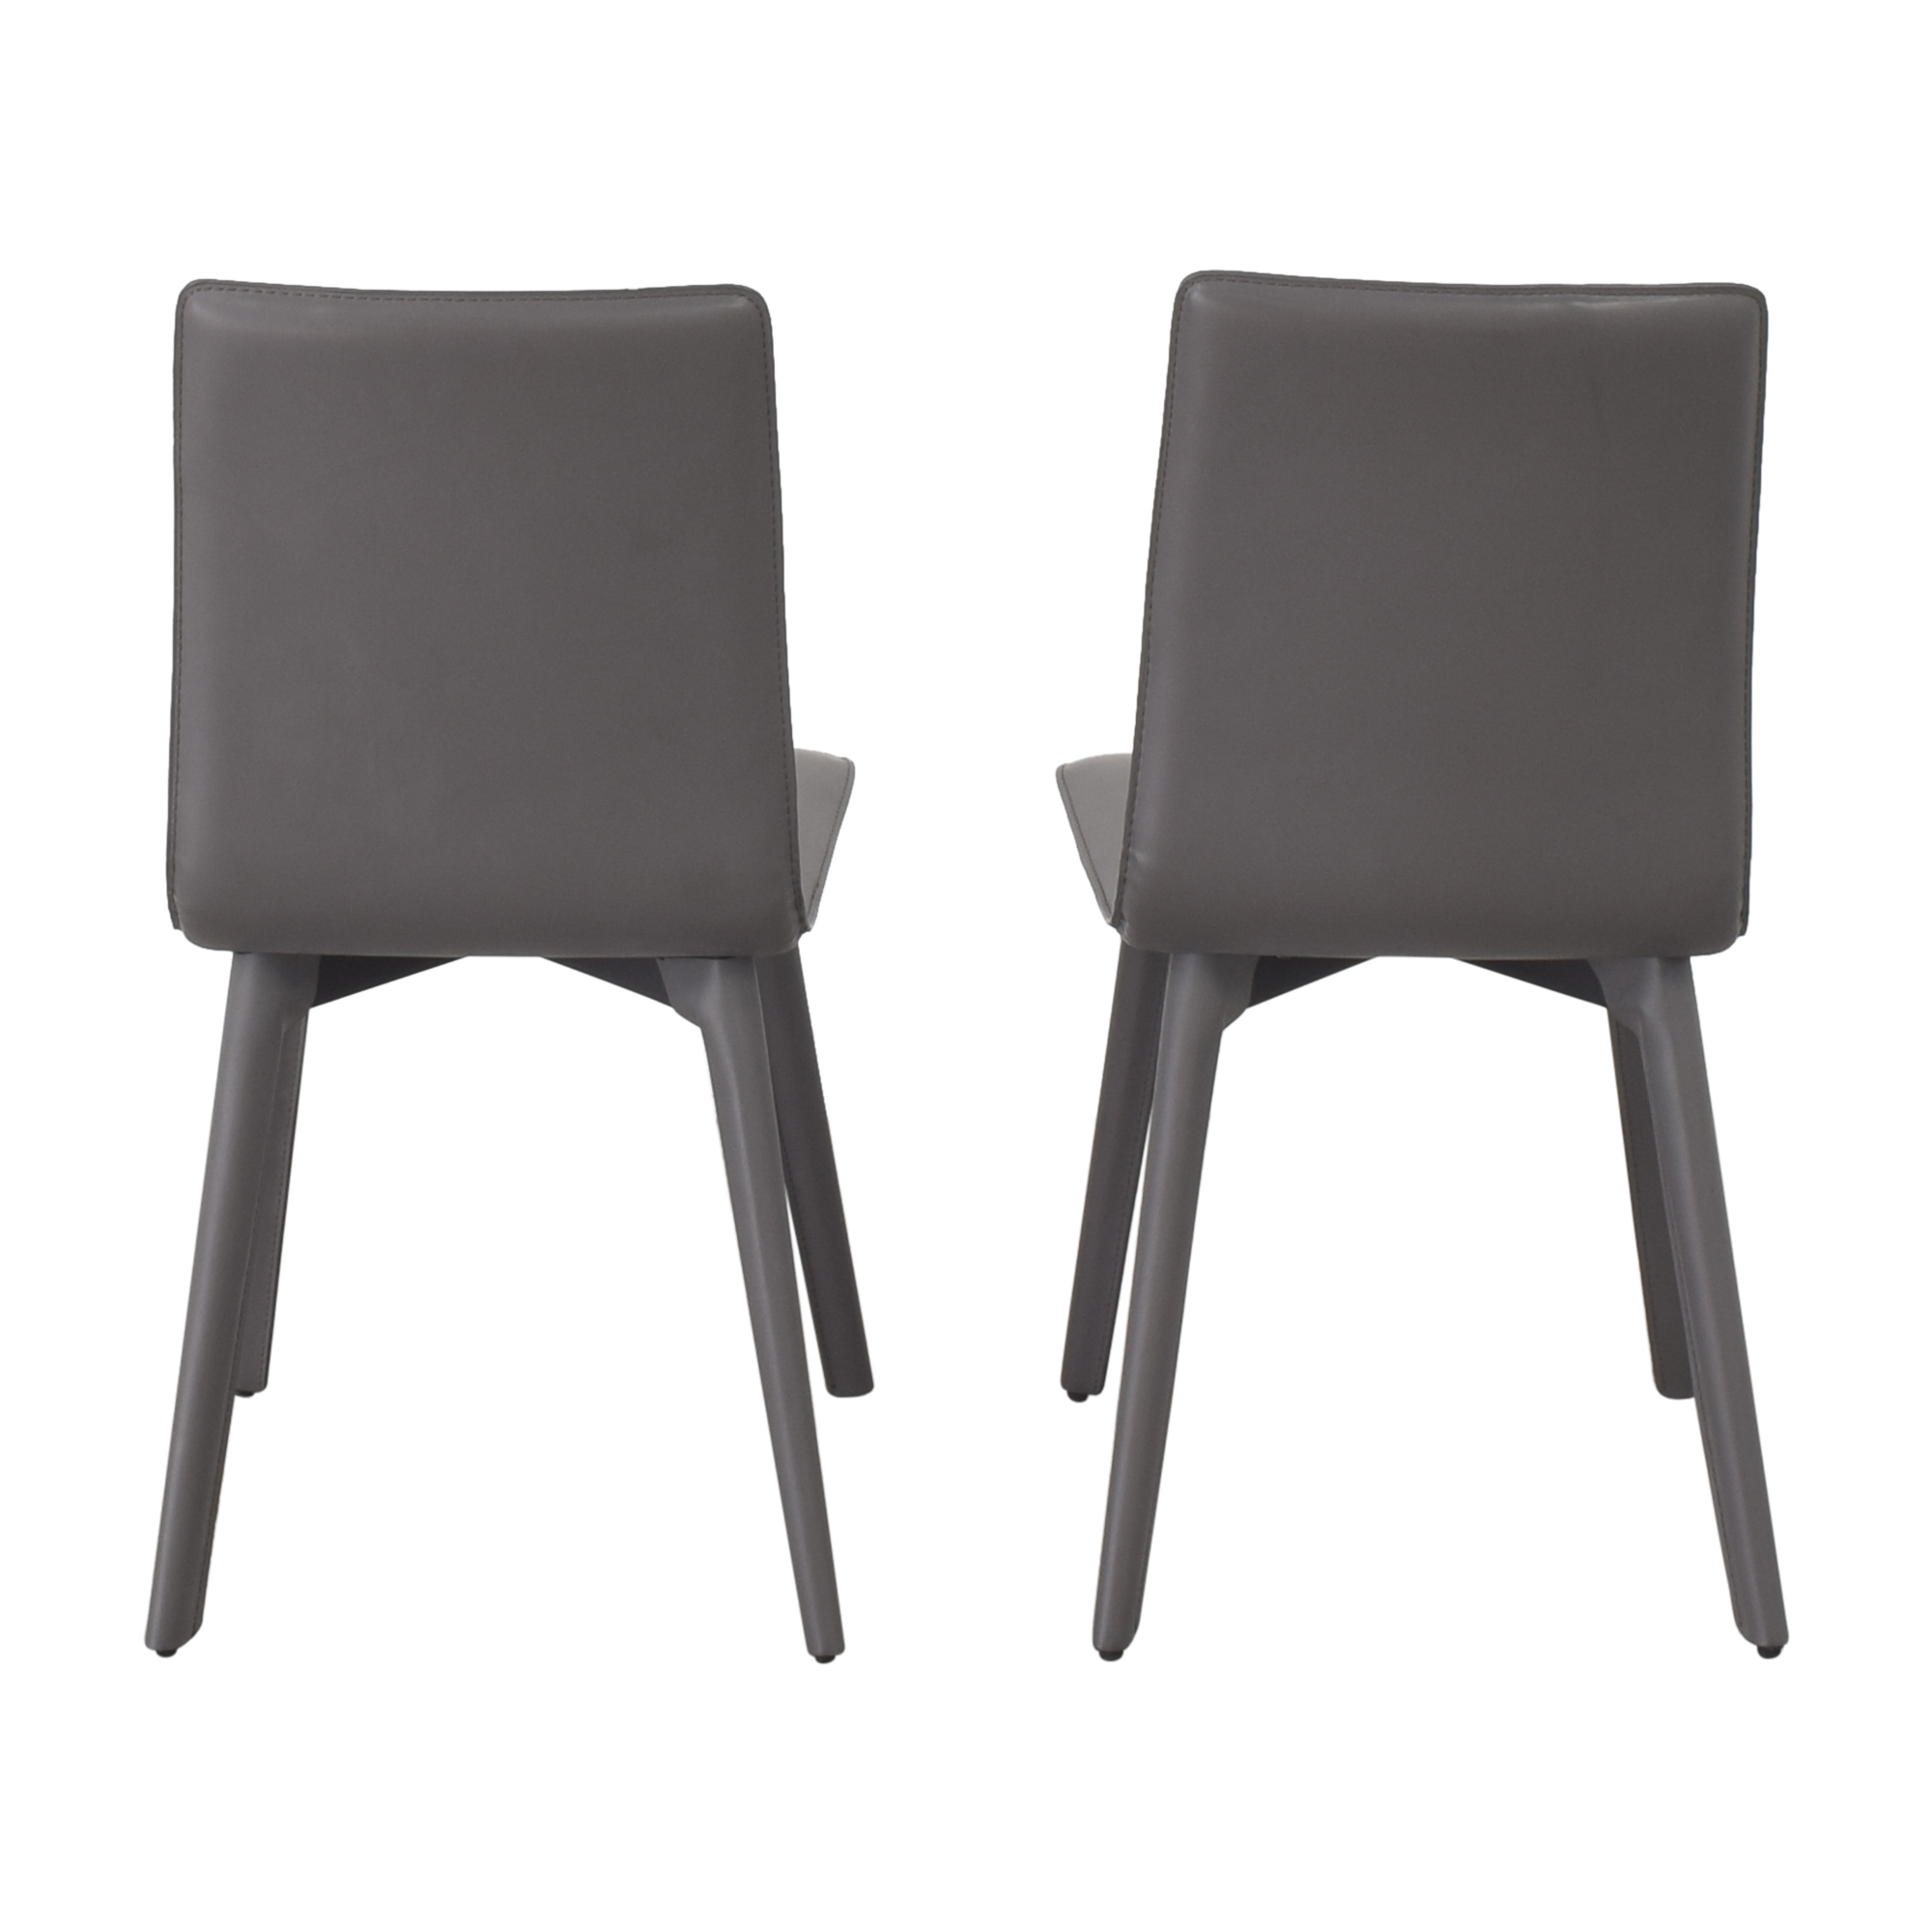 Room & Board Room & Board Hirsch Dining Chairs coupon